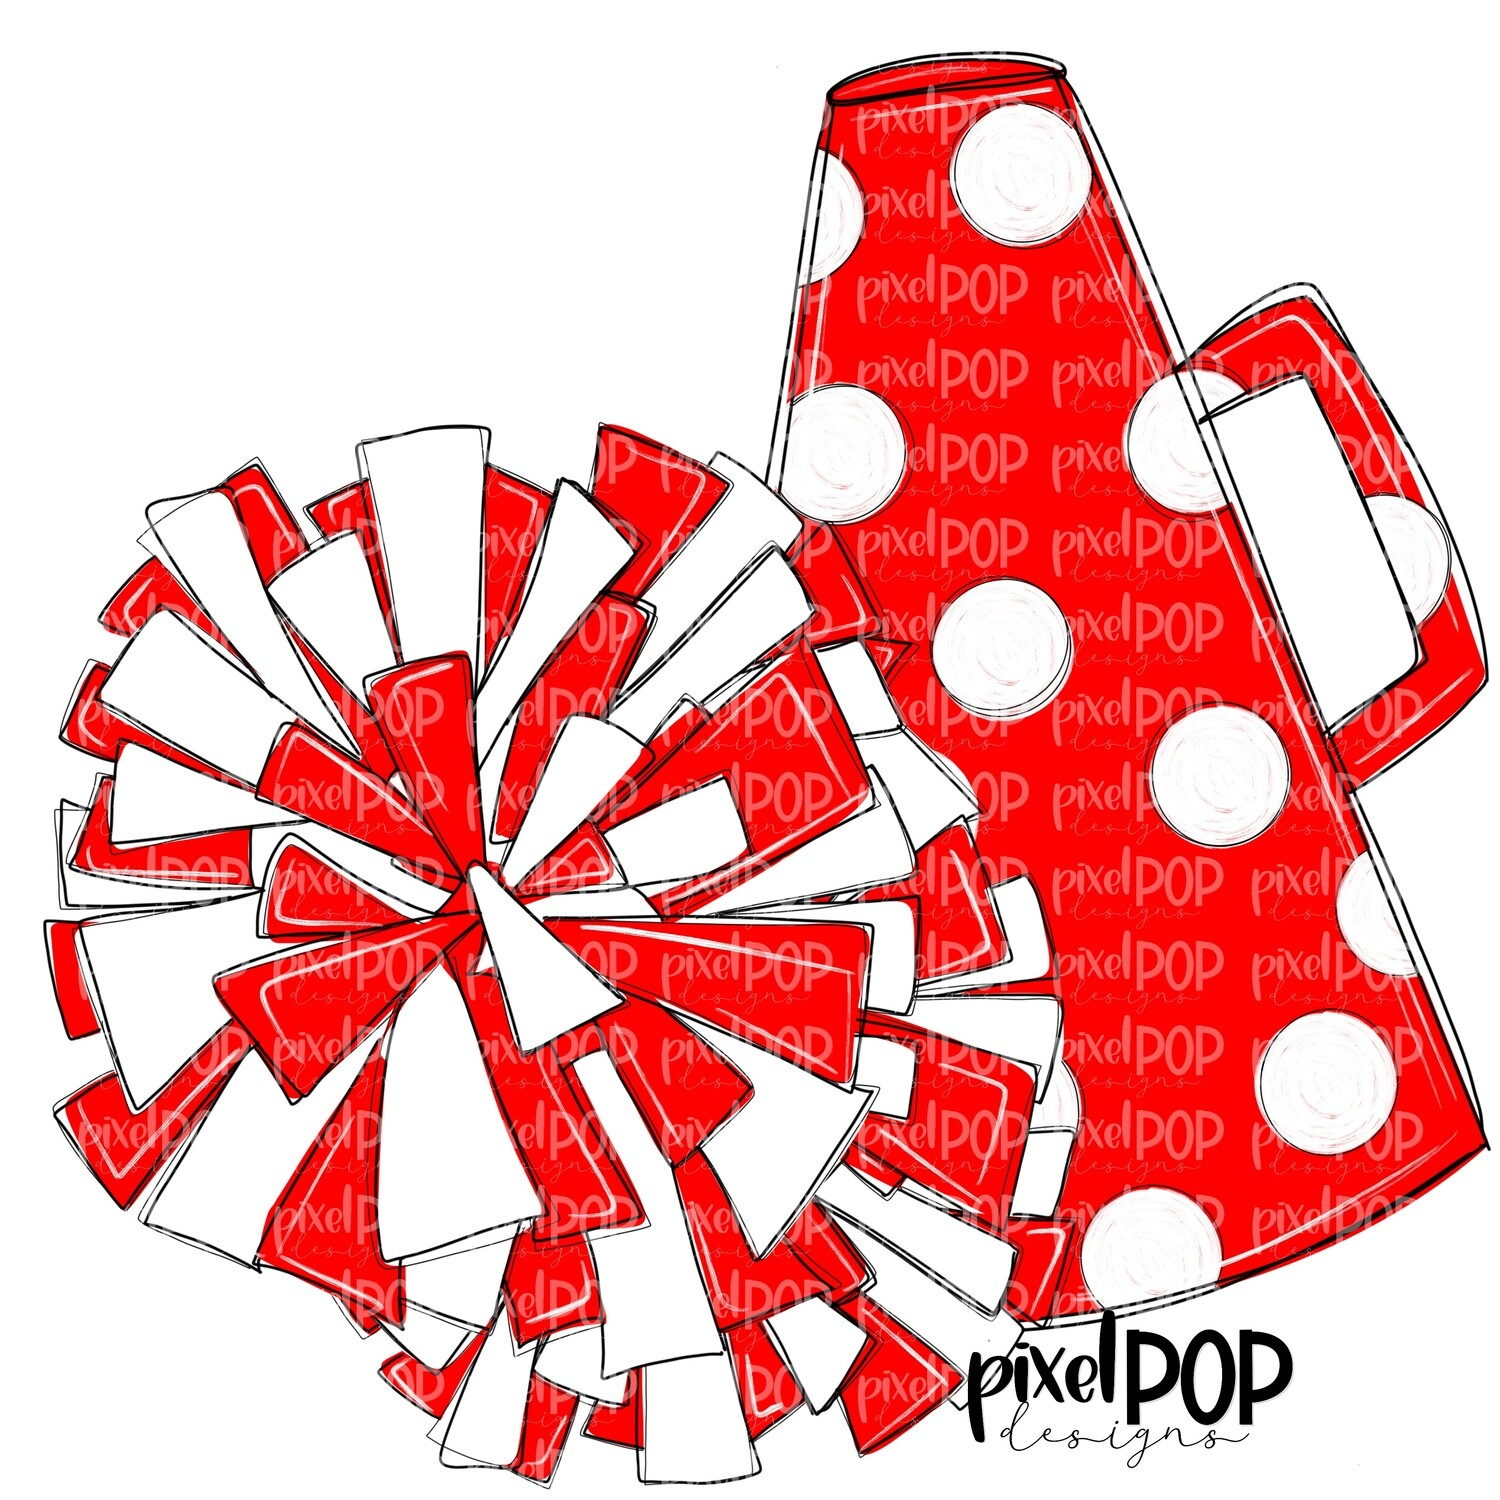 Cheerleading Megaphone and Poms Red and White PNG | Cheerleading | Cheer Design | Cheer Art | Cheer Blank | Sports Art